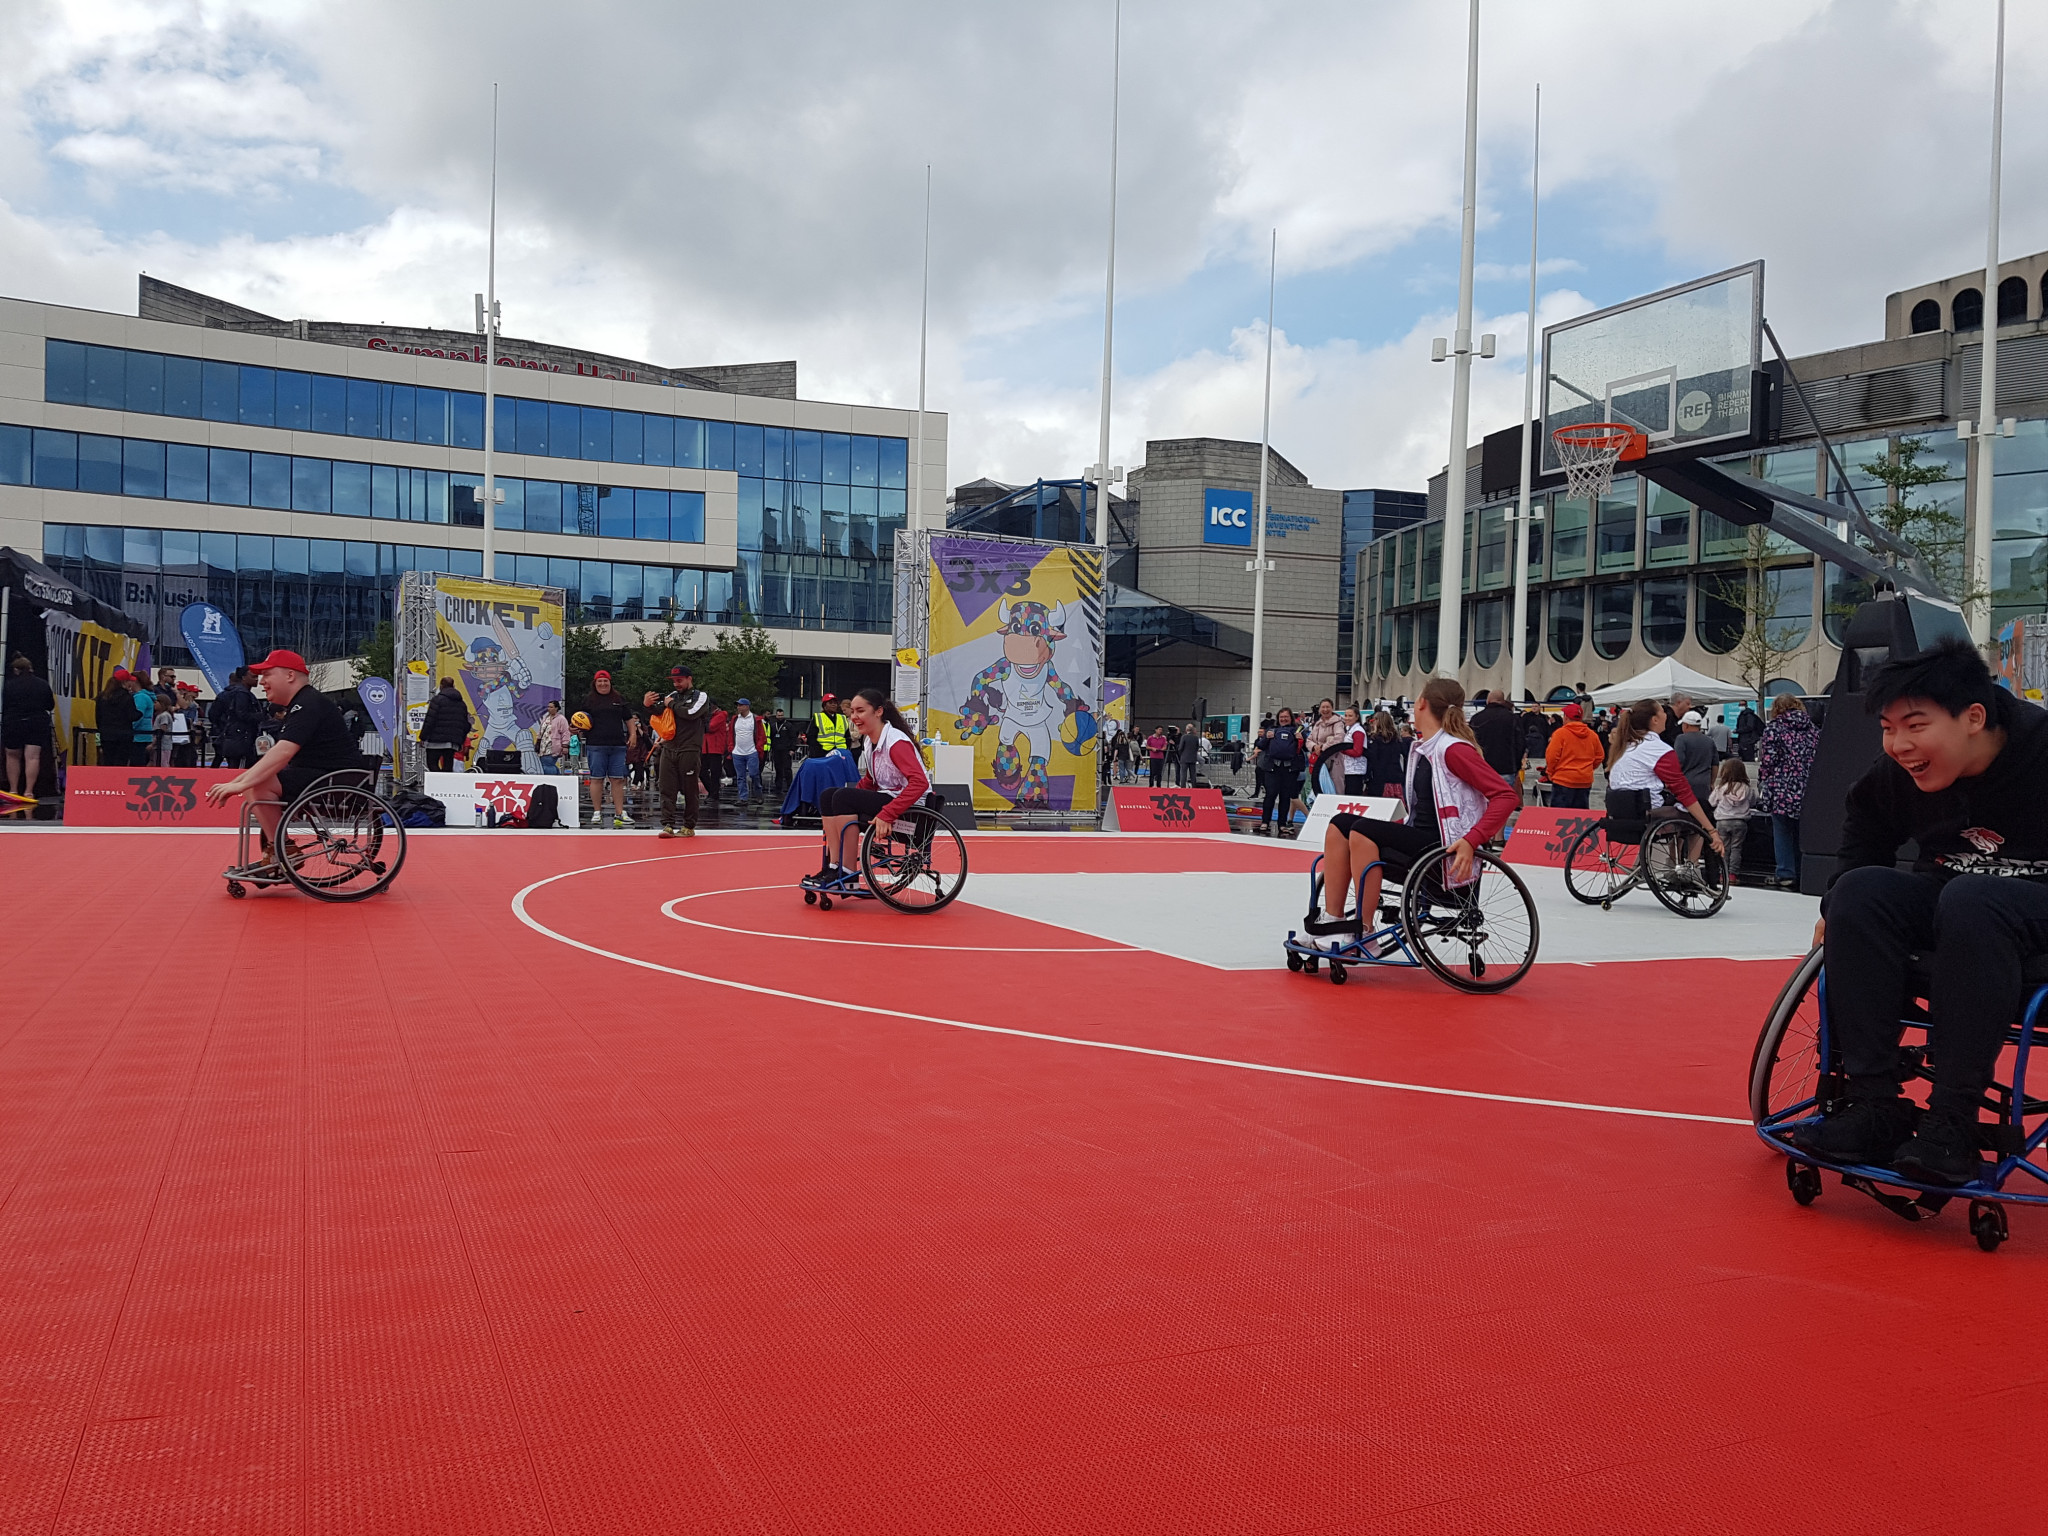 Wheelchair basketball was played by able-bodied and disabled members of the public during the festival ©ITG